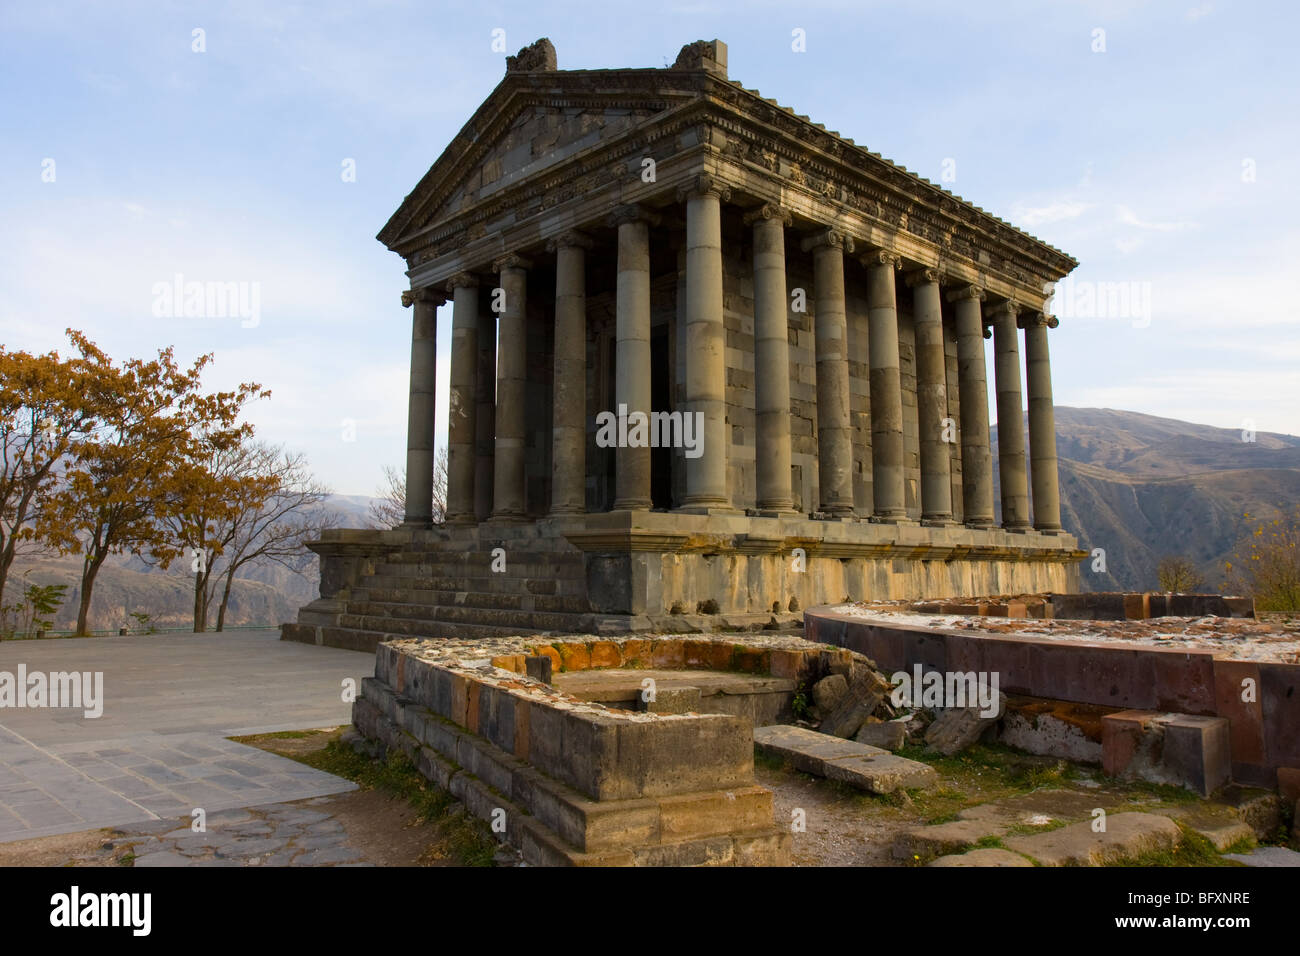 The temple of Garni, Armenia. - Stock Image